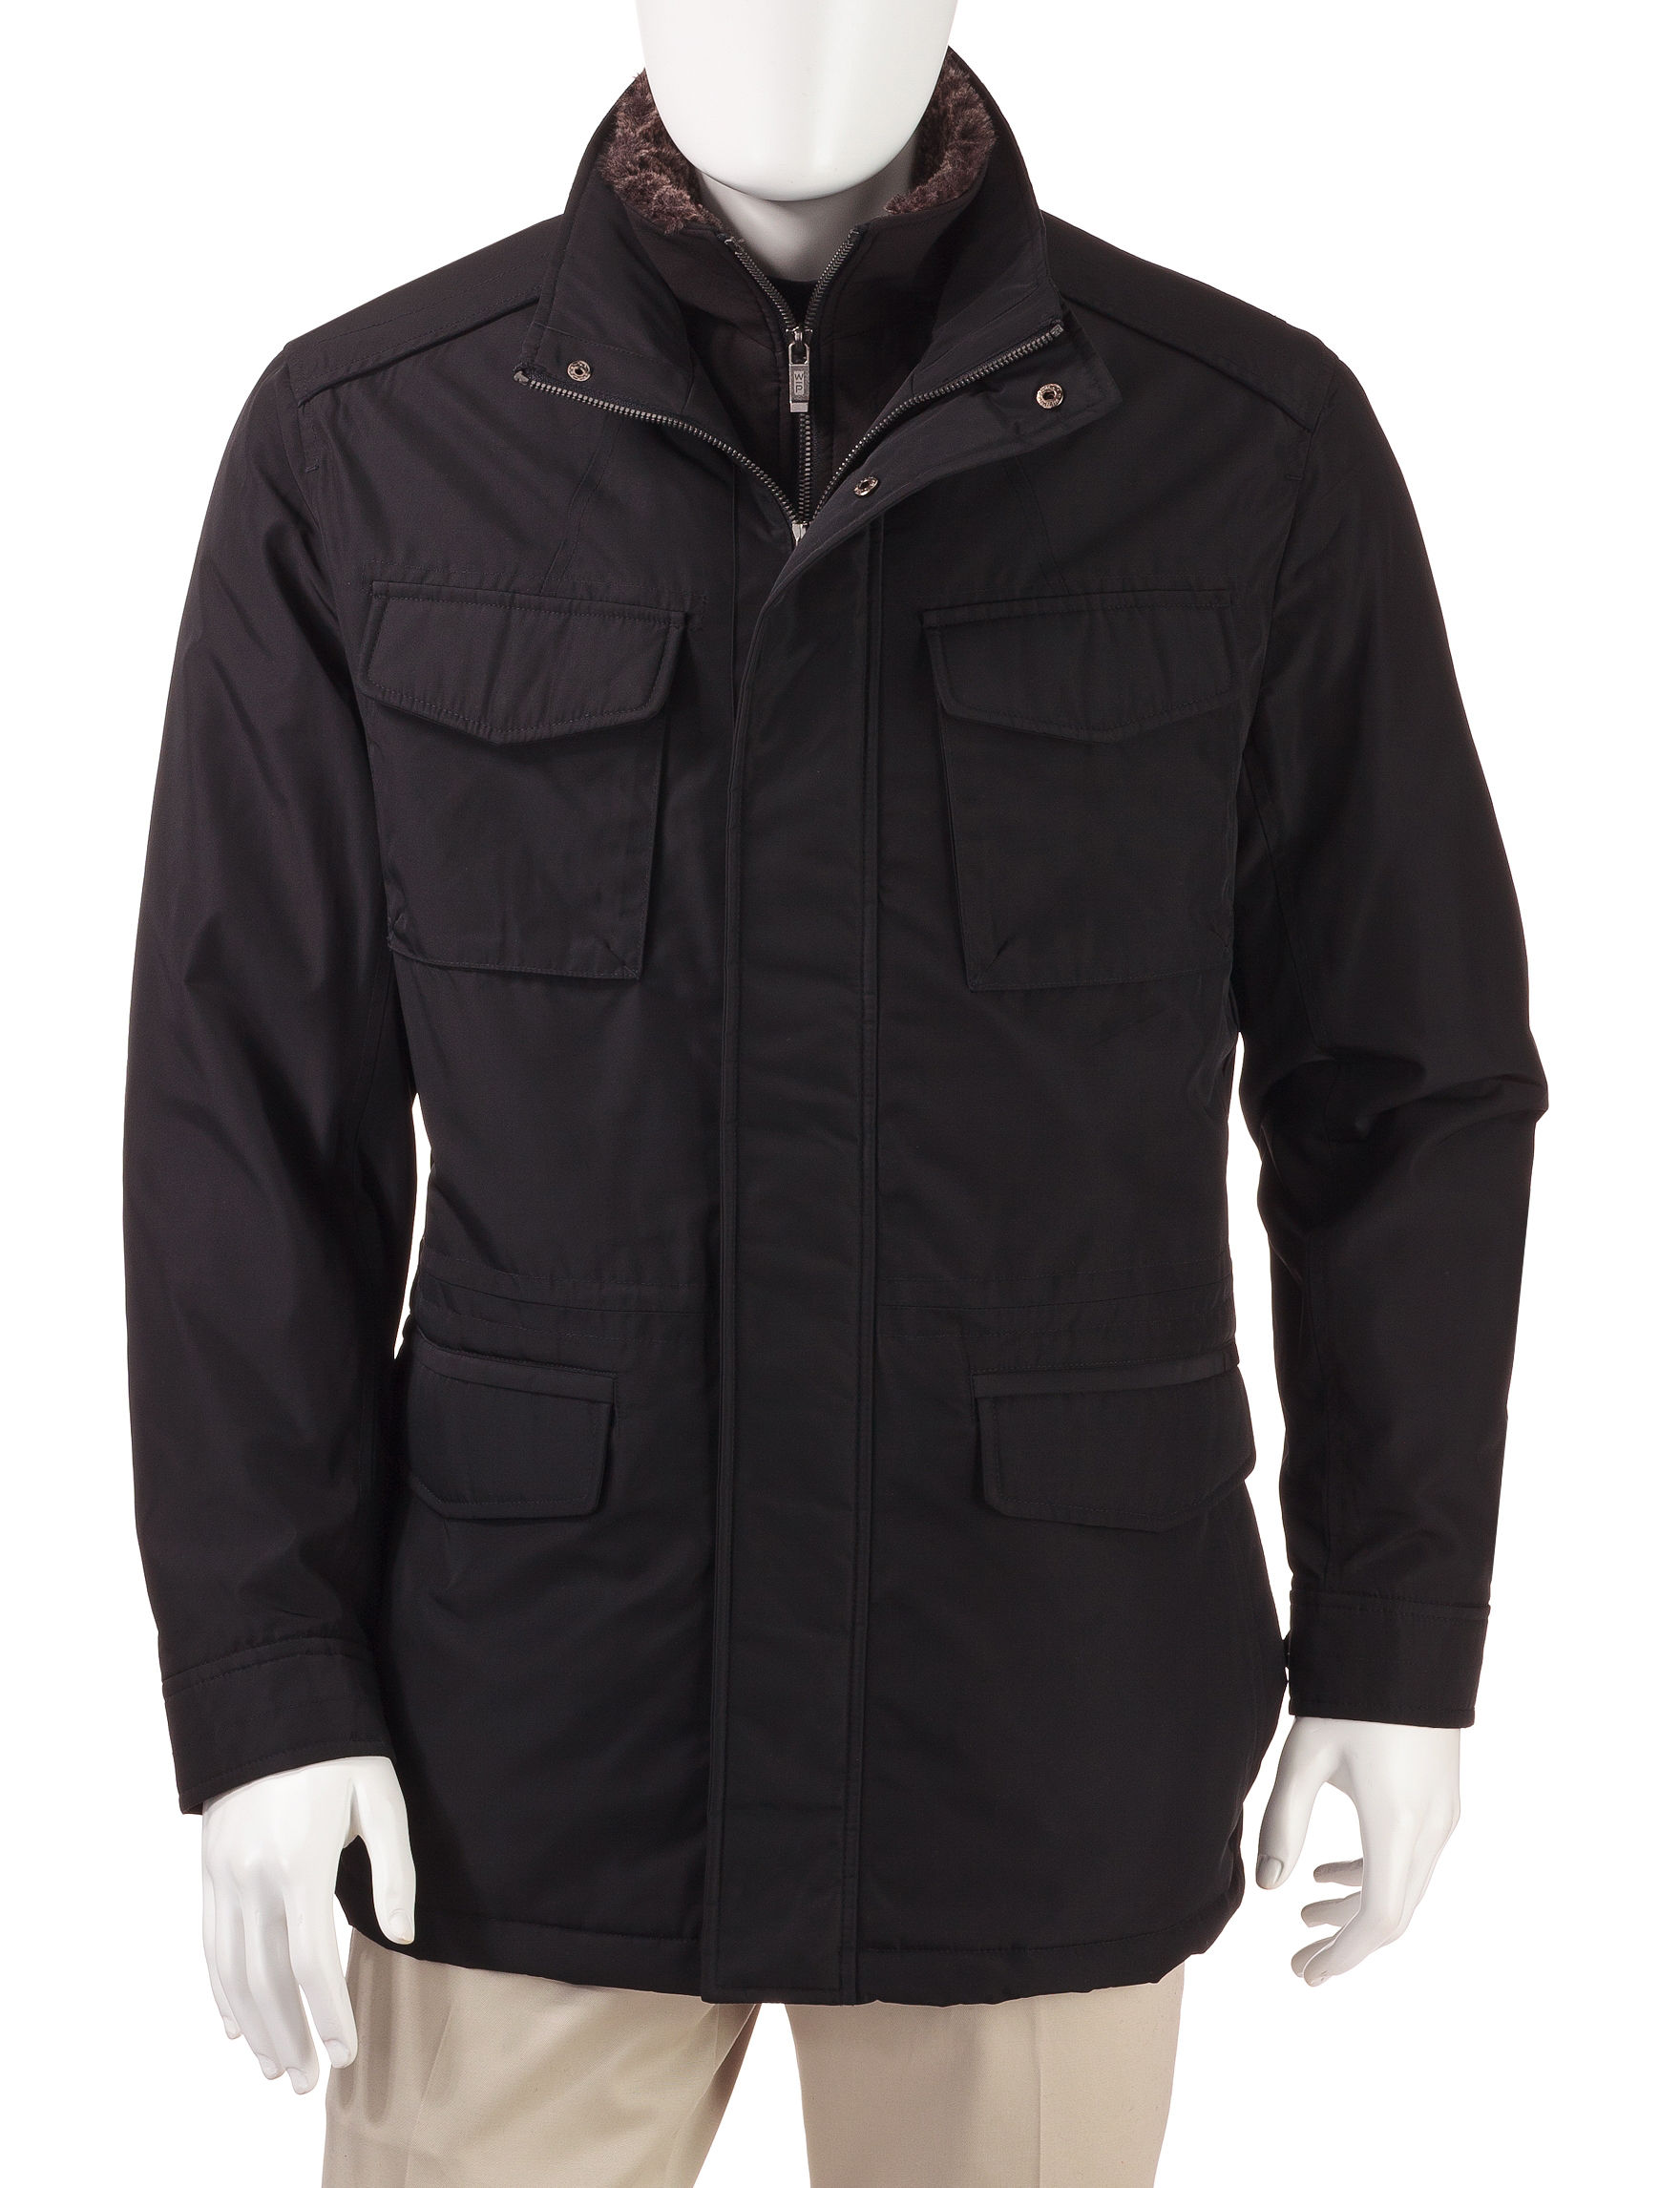 Weatherproof Black Insulated Jackets